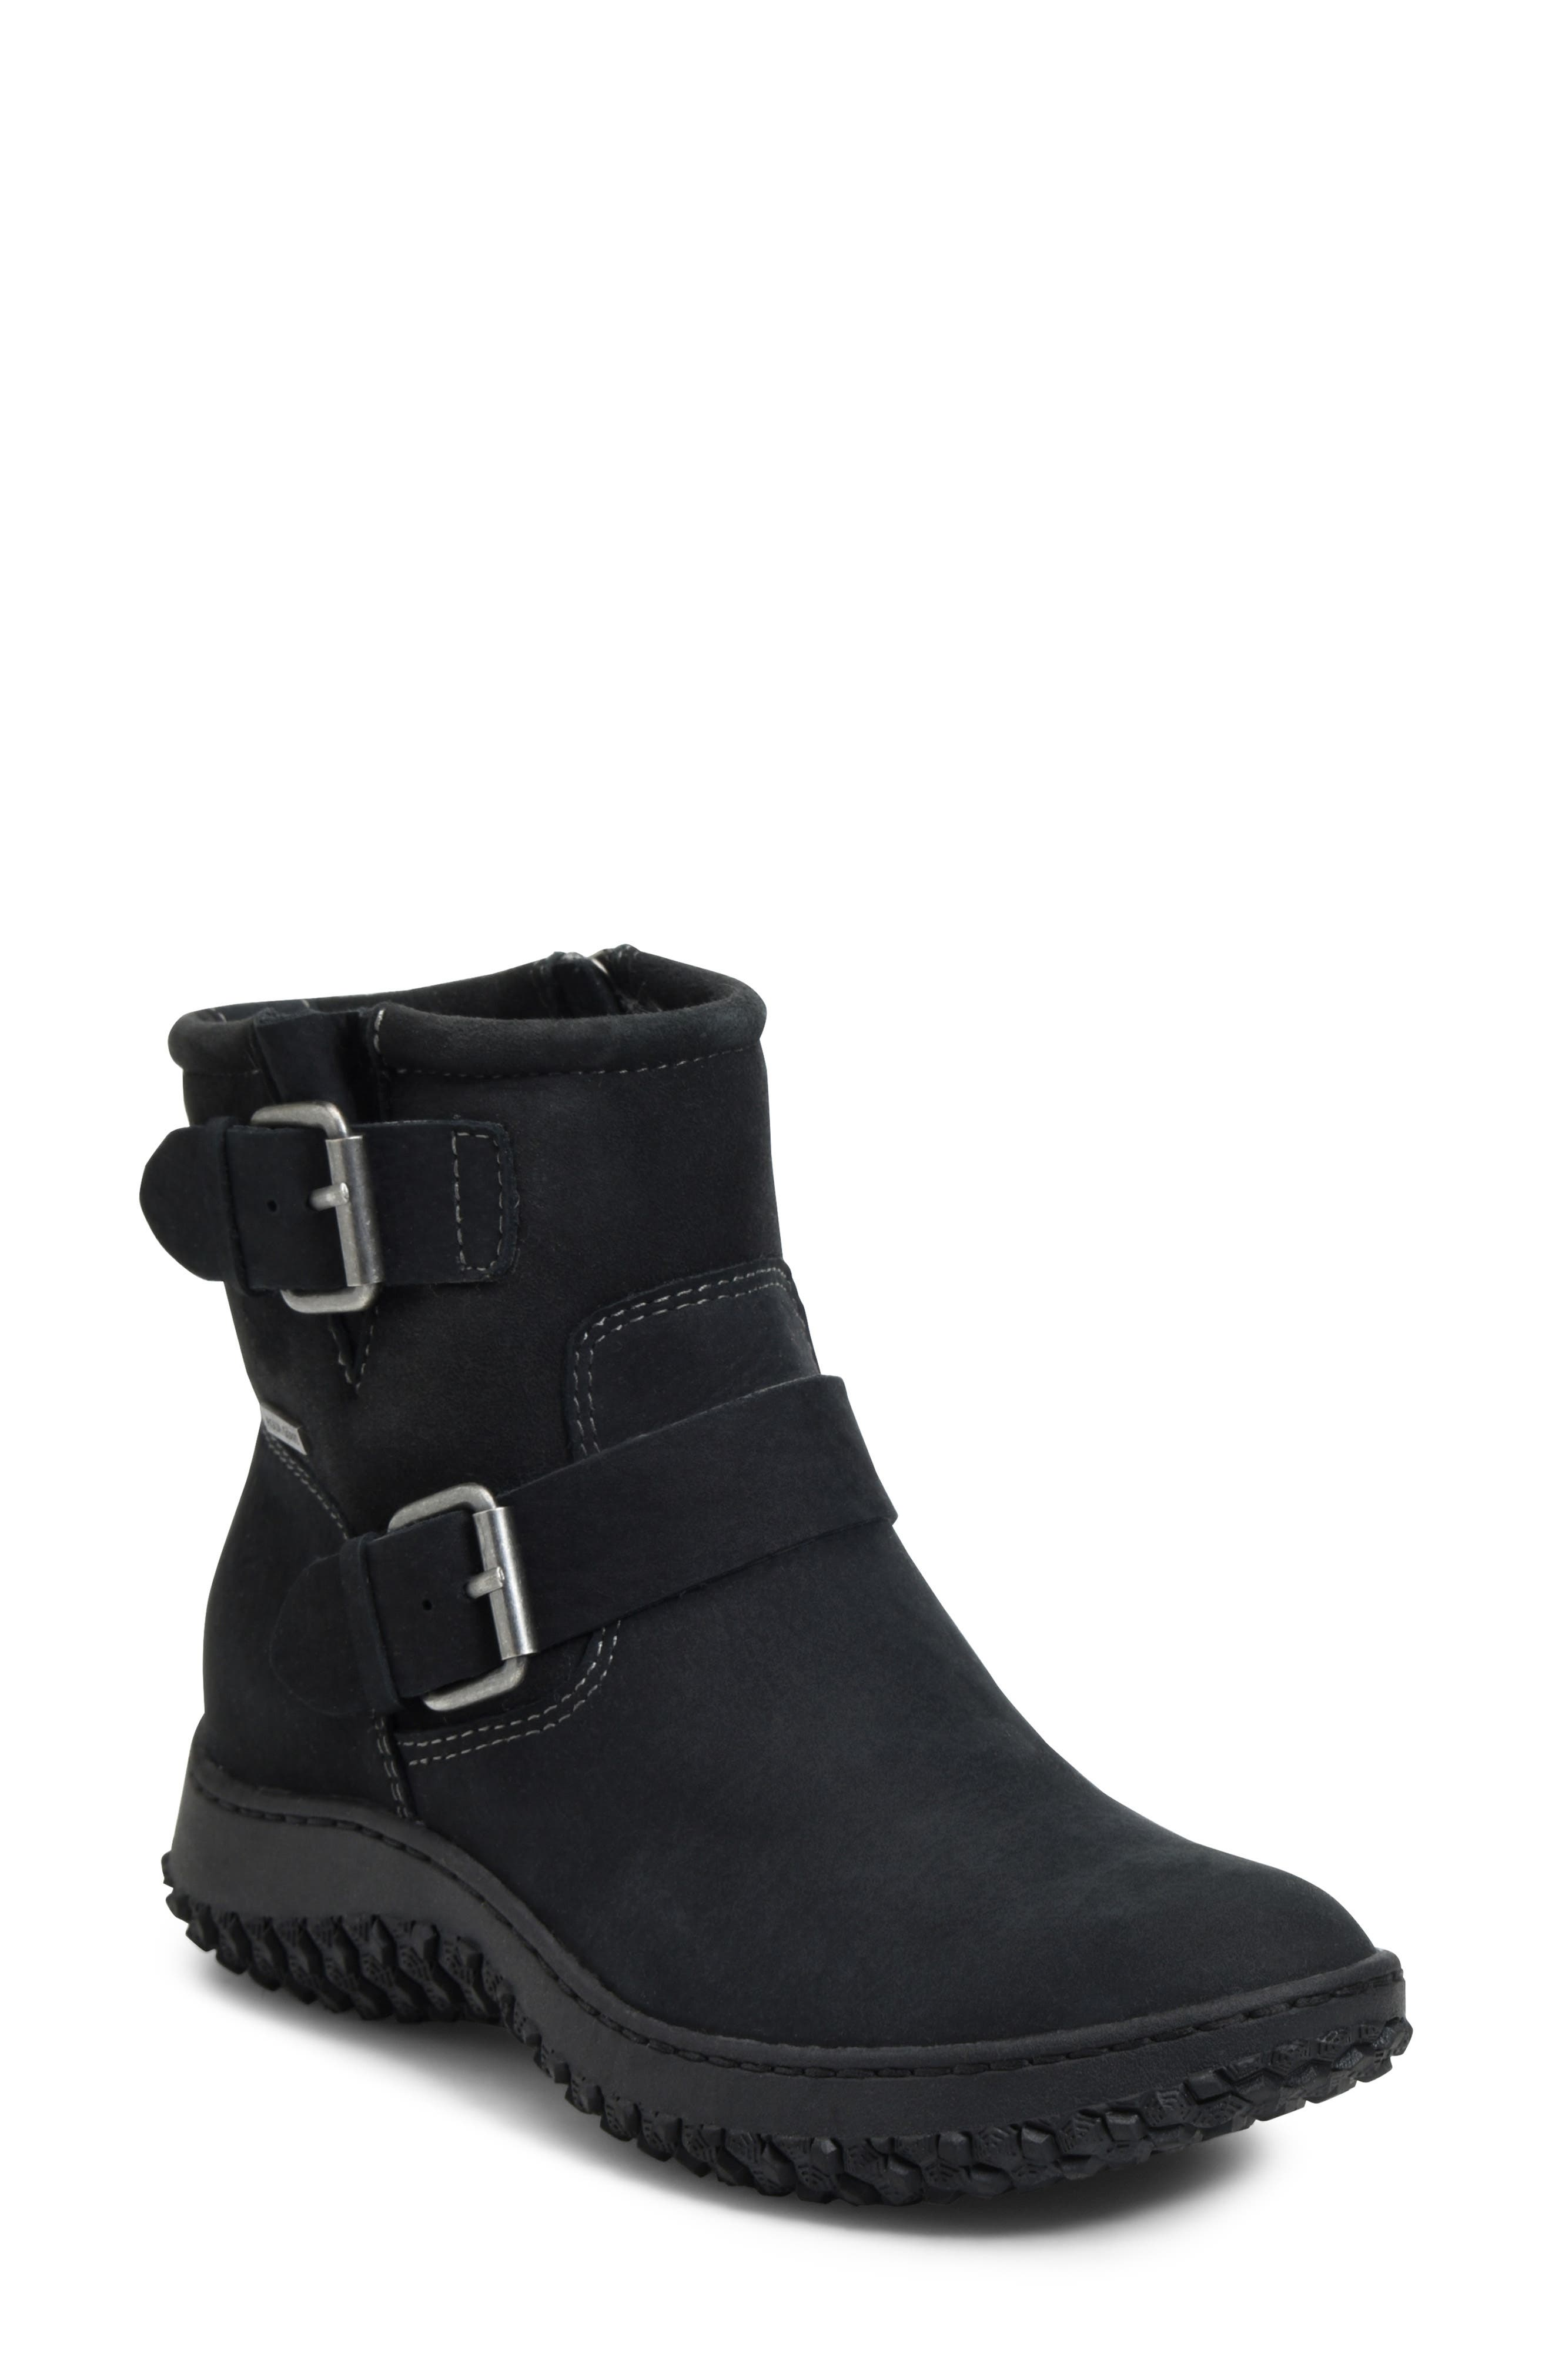 Image of Sofft Ashlen Waterproof Genuine Shearling Lined Bootie